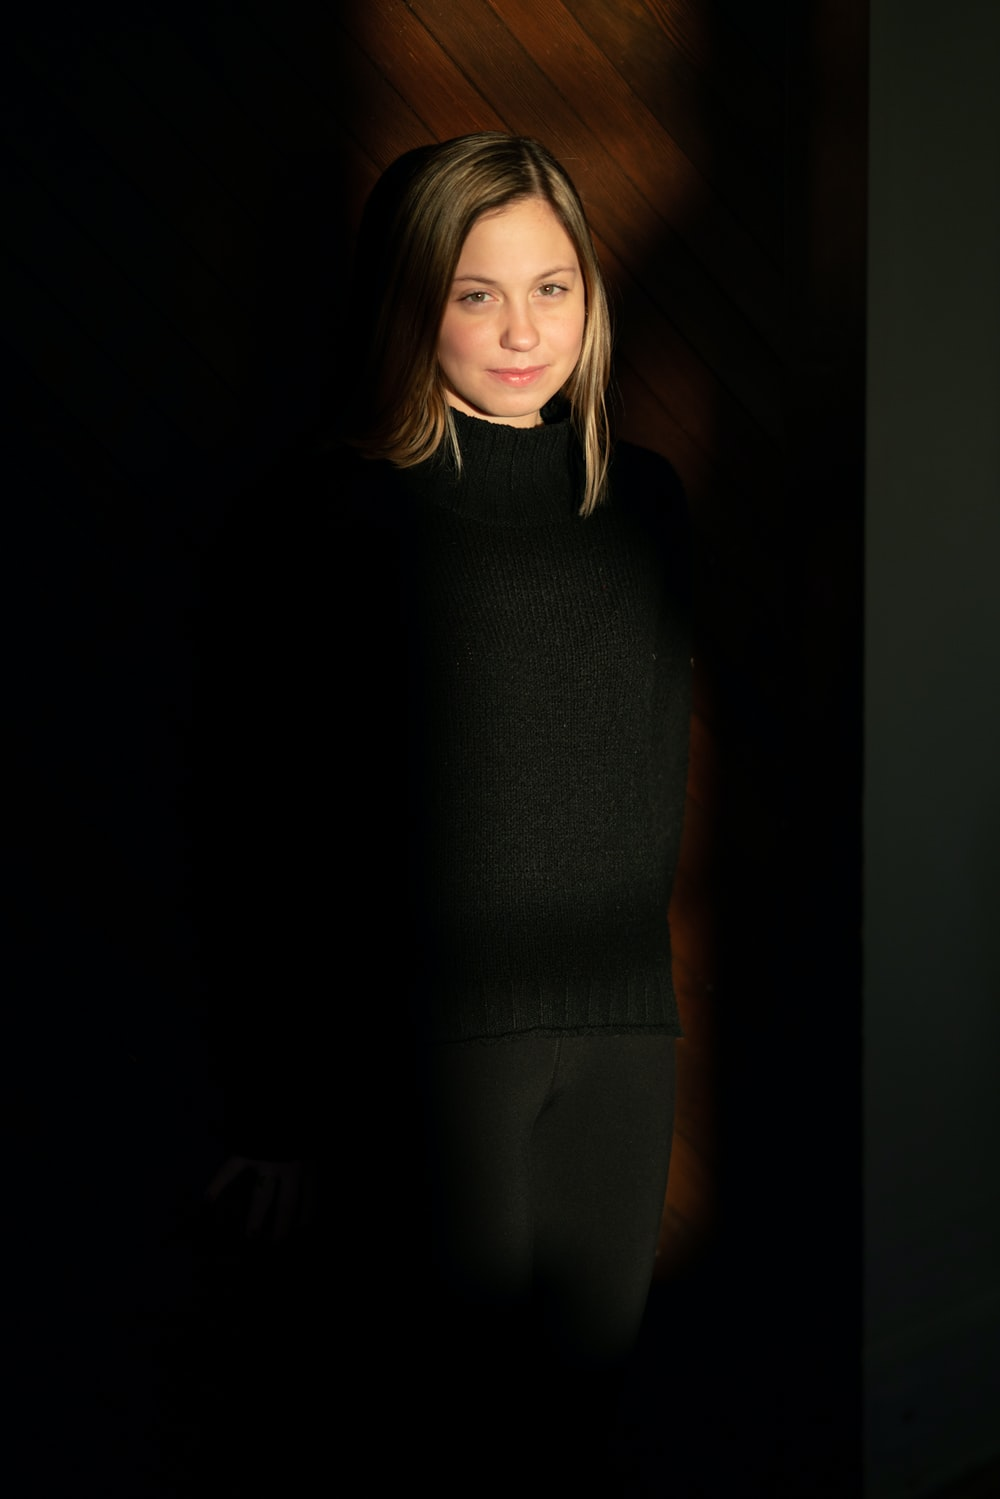 woman in black sweater